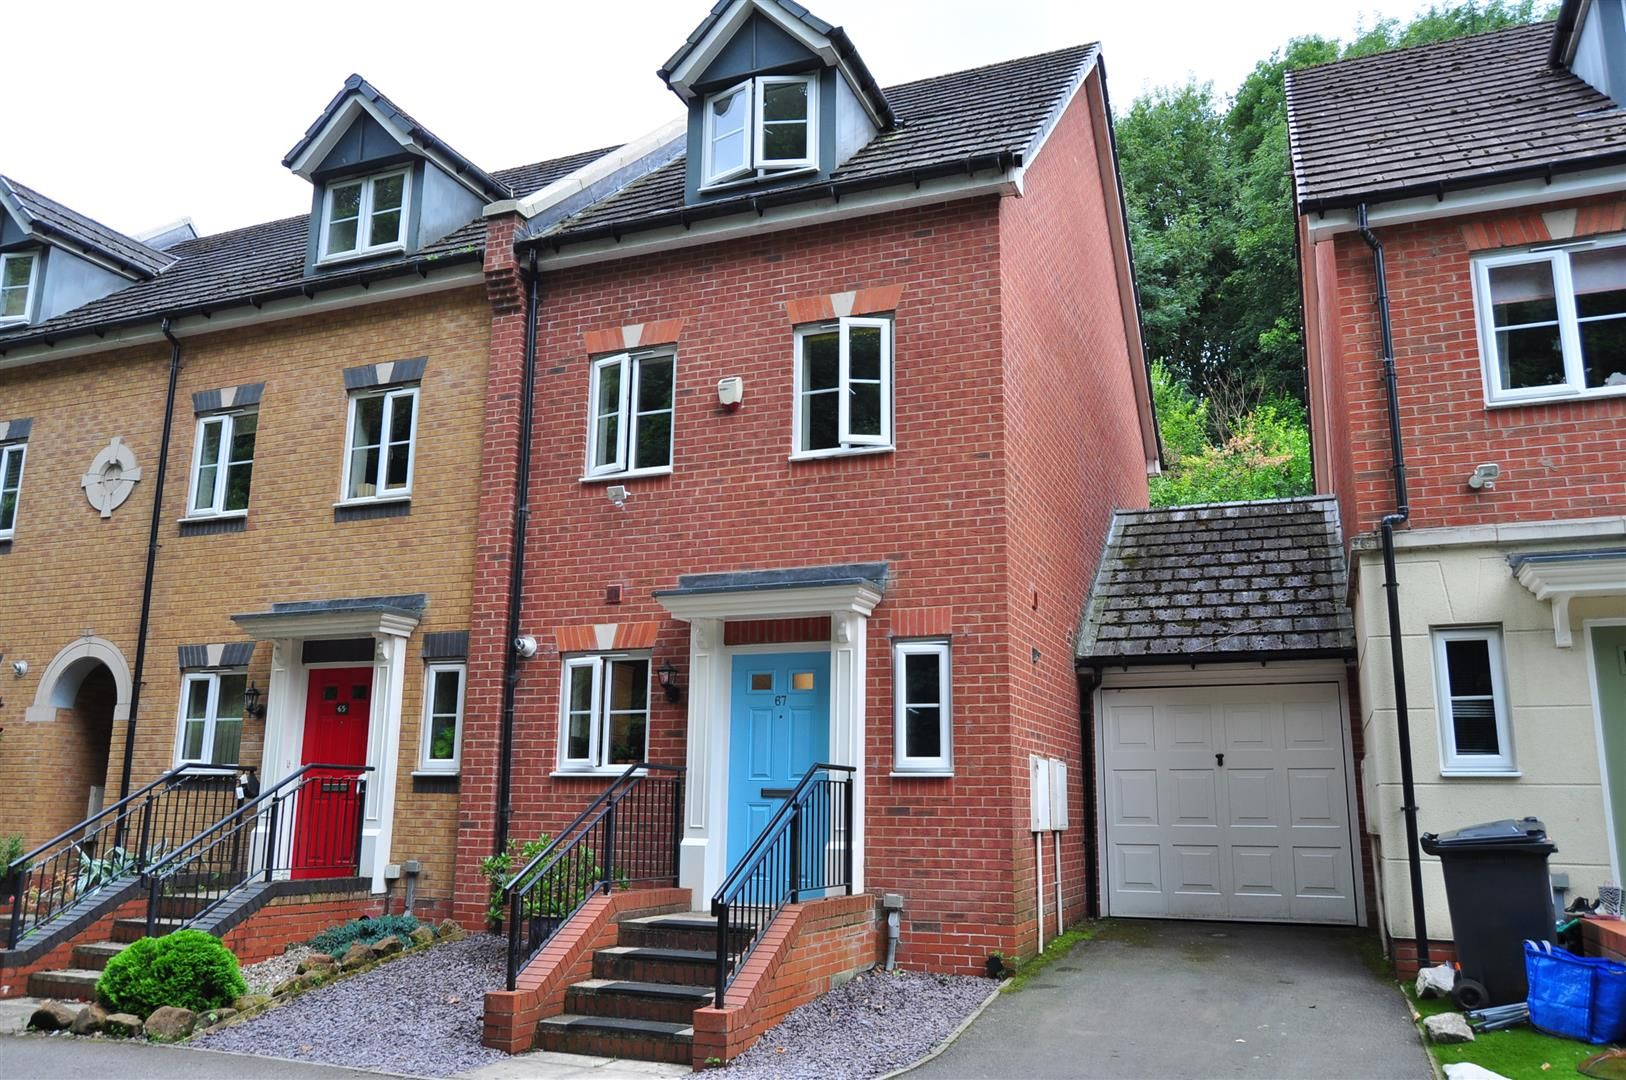 4 bed end-of-terrace for sale 20